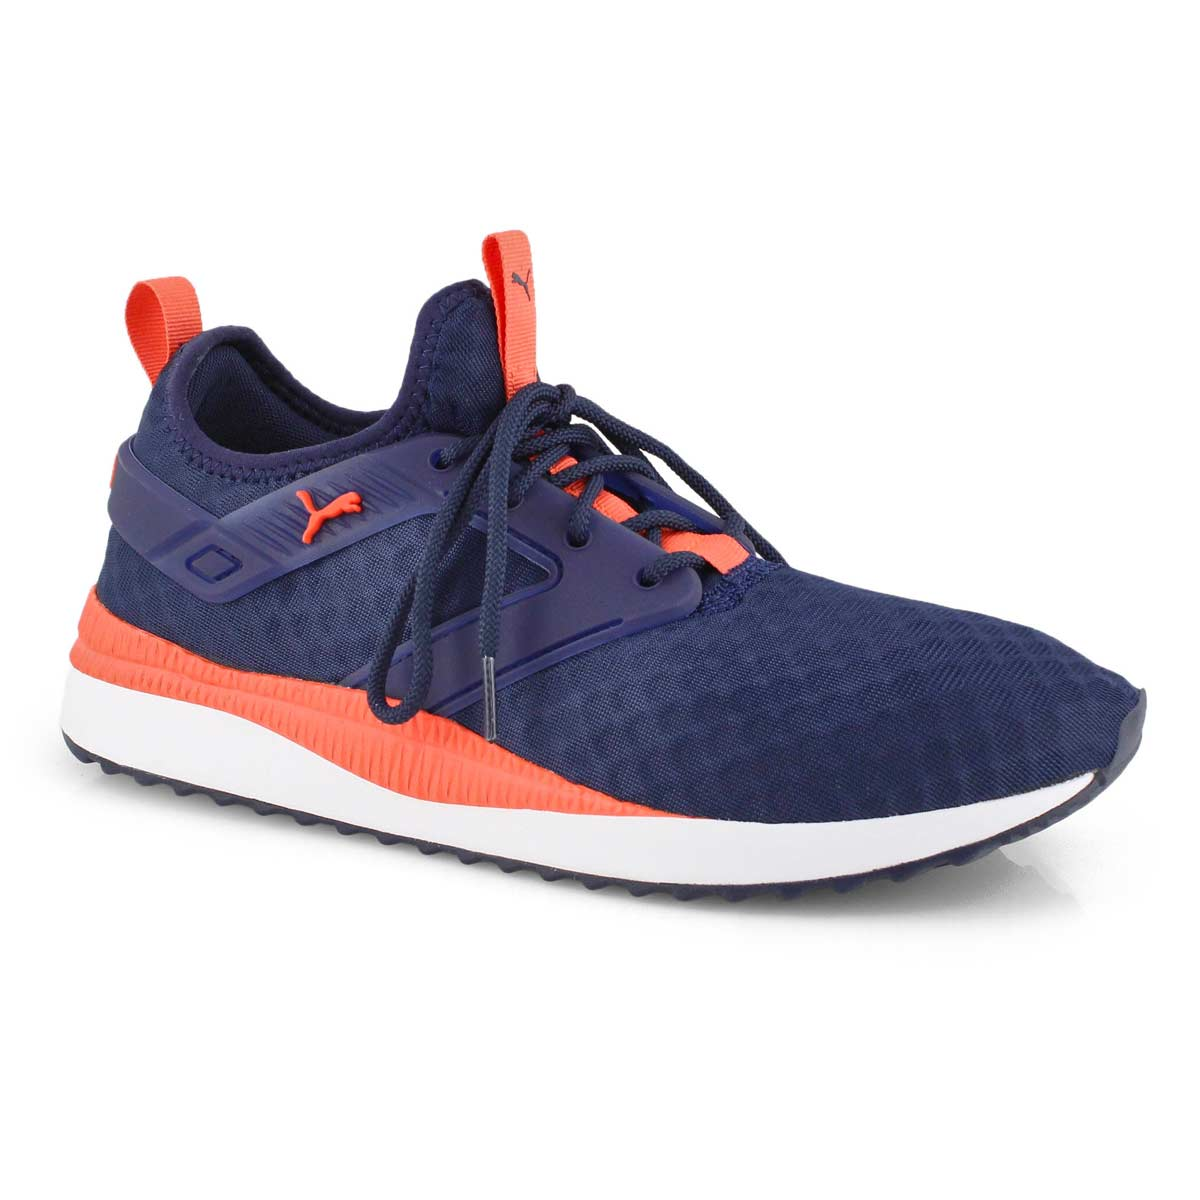 Mns Pacer Next Excel blue/org sneakers